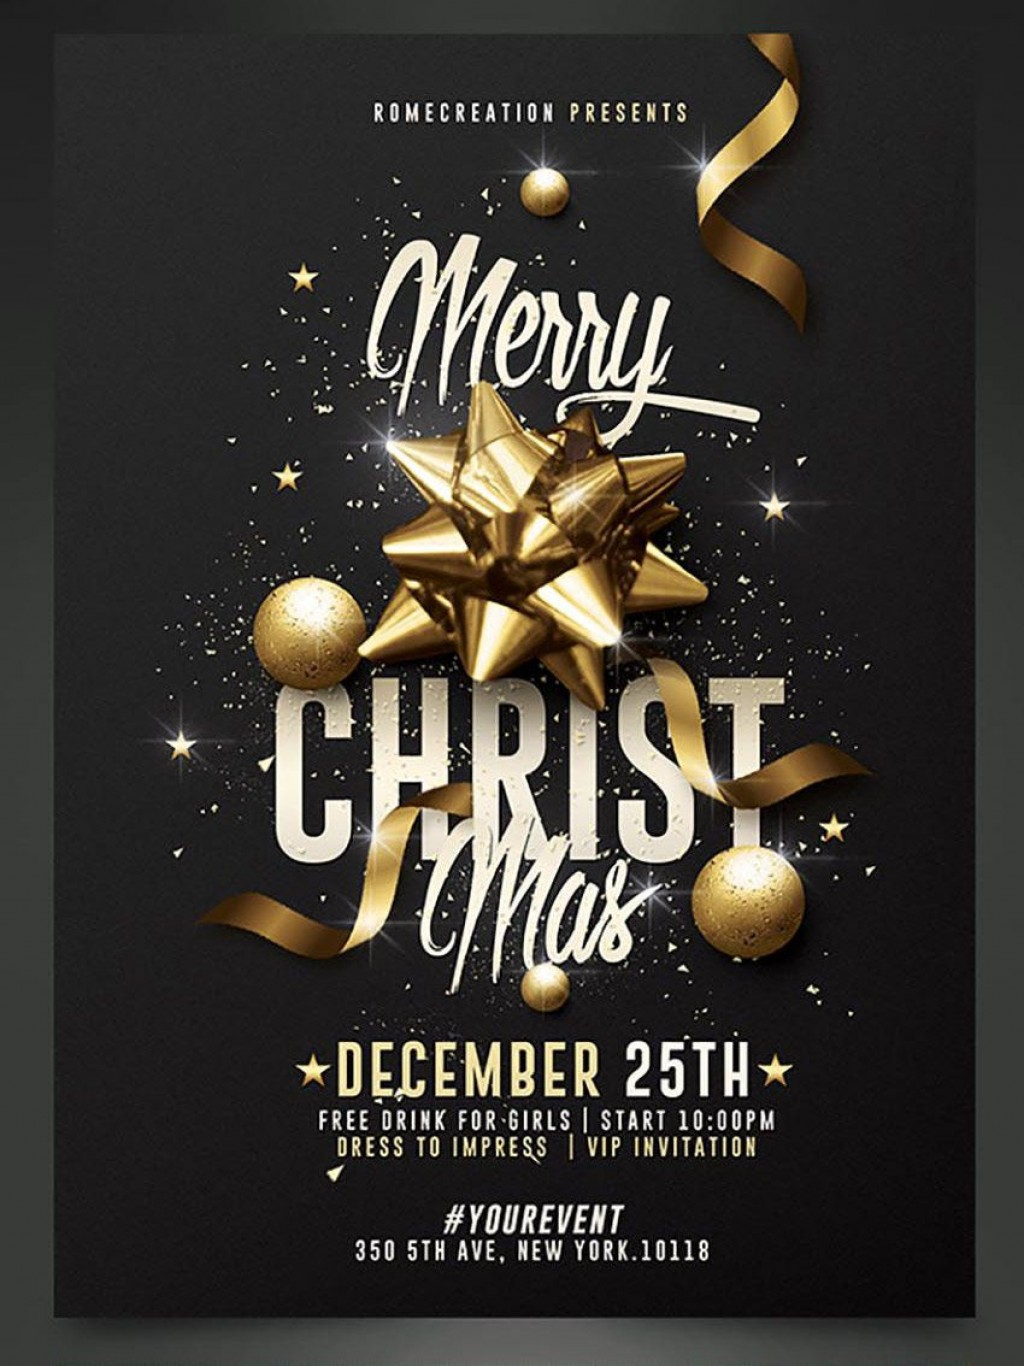 008 Unique Holiday Party Flyer Template Free Picture  OfficeLarge